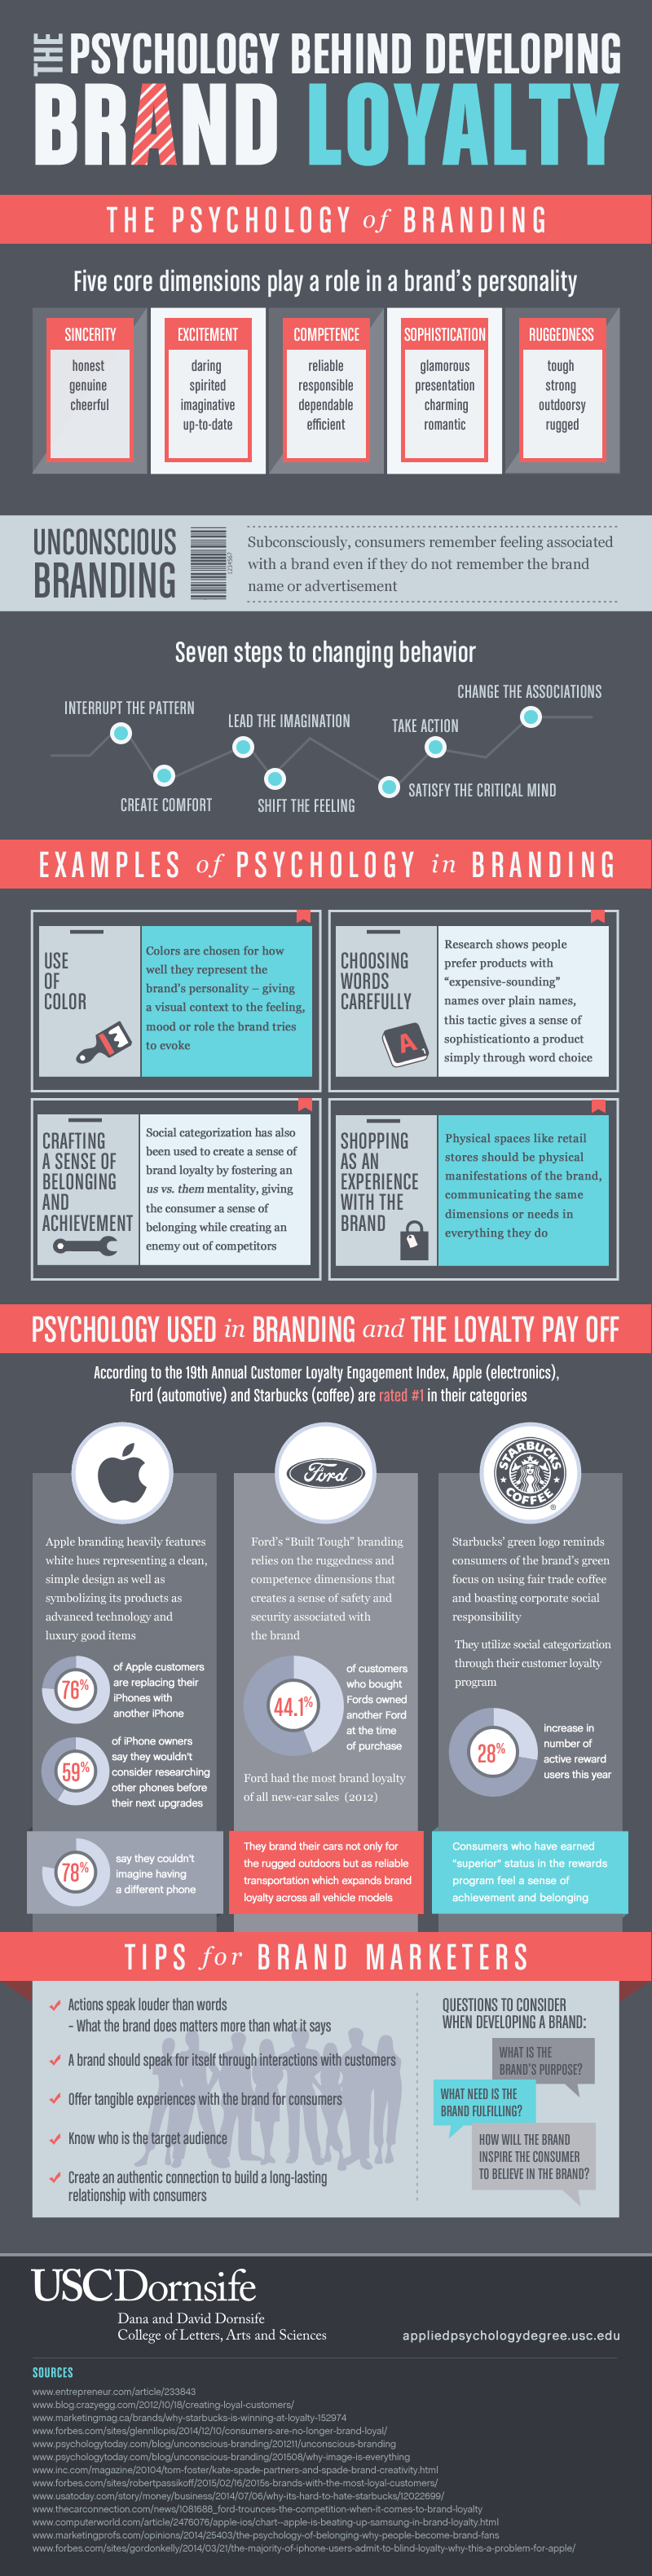 The Psychology Behind Brand Loyalty Infographic Impact